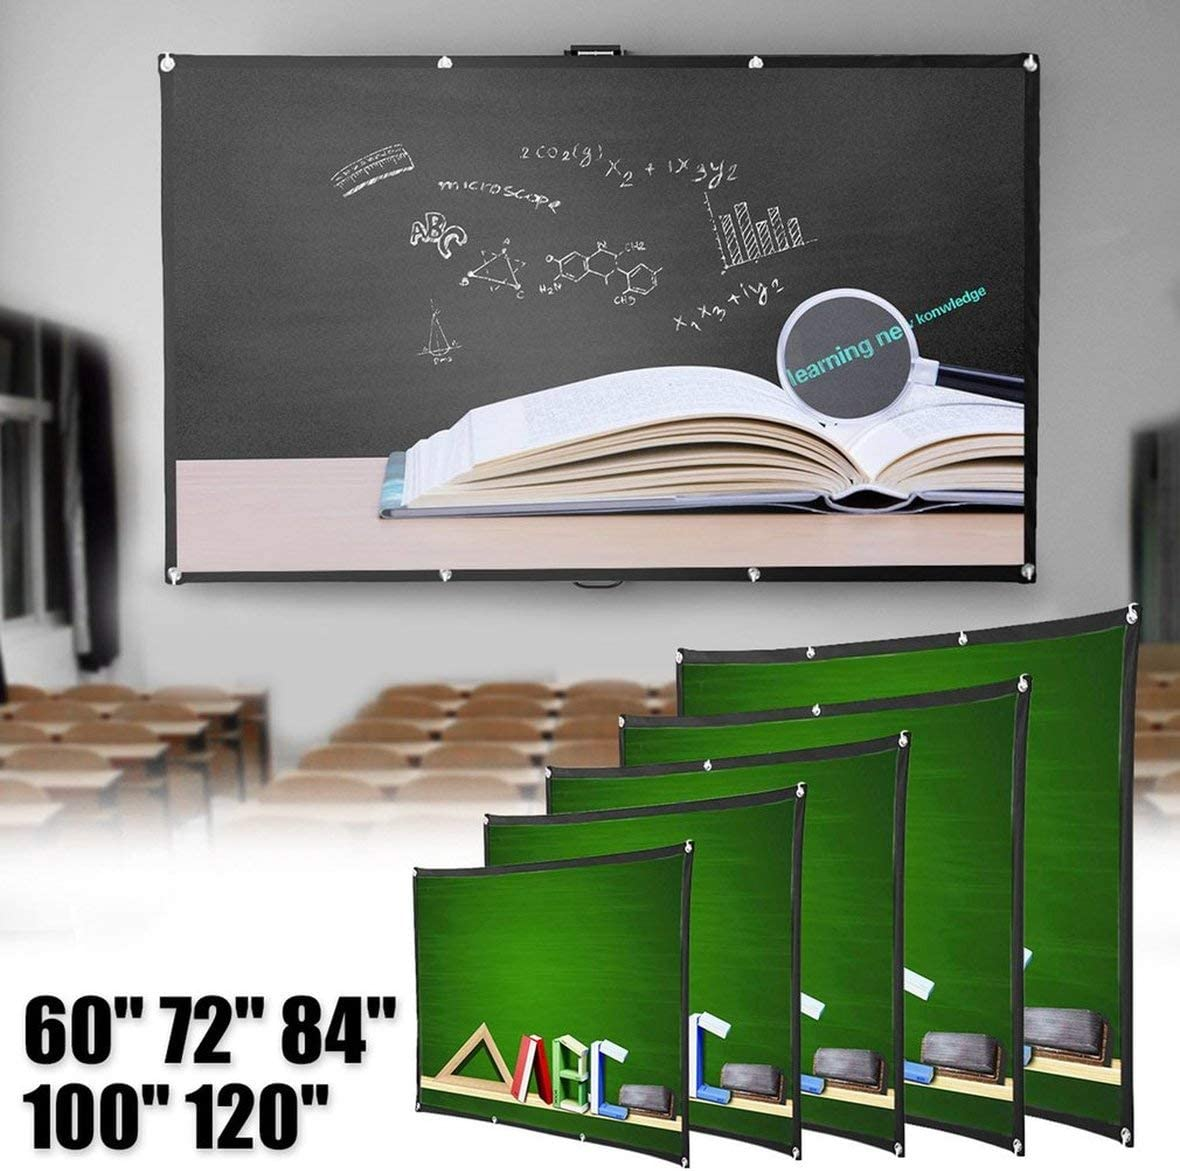 Pennytupu Portable Foldable Movie Projector Screen 16:9 Projection HD Home Theater Screen for Party Meeting Public Display